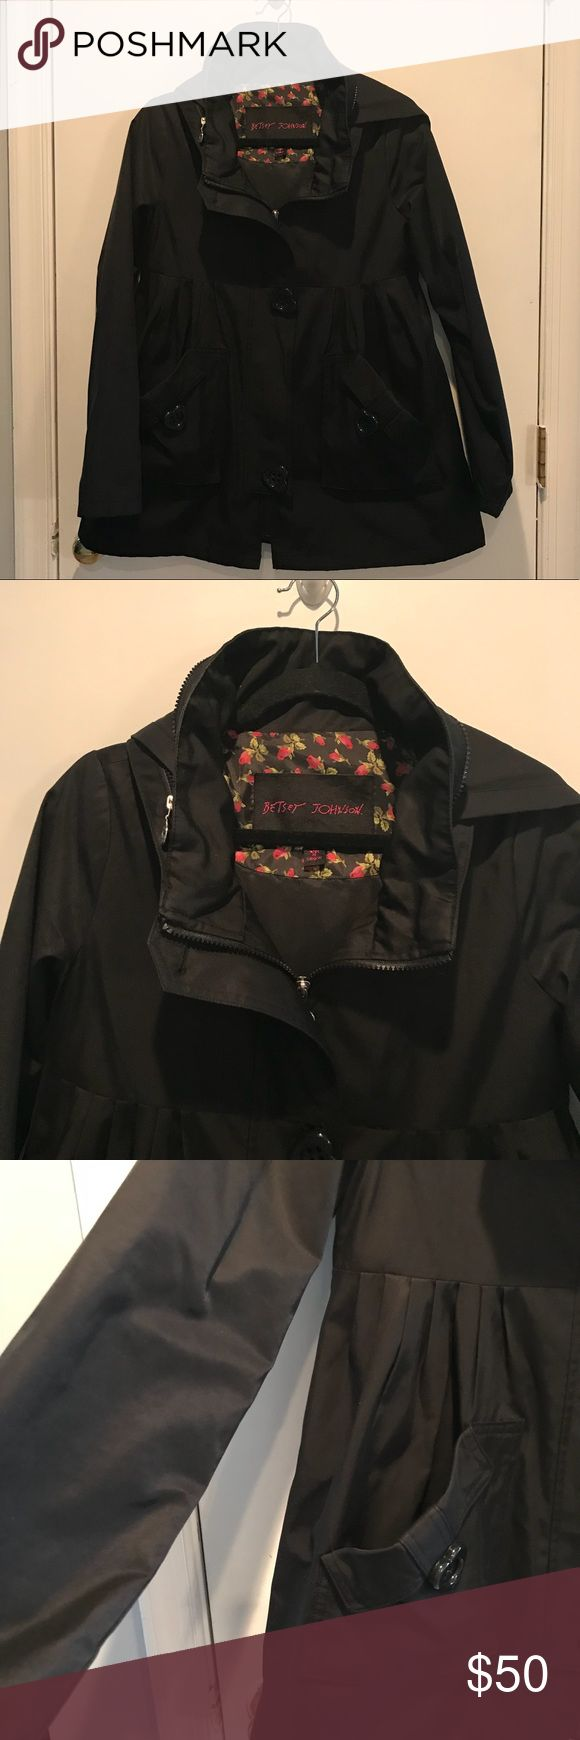 Betsey Johnson Hooded Raincoat Betsey Johnson Hooded Raincoat With Heart Shaped Buttons. Drawstring That Ties In Back. Zips Up. Gently Used / Excellent Condition Betsey Johnson Jackets & Coats